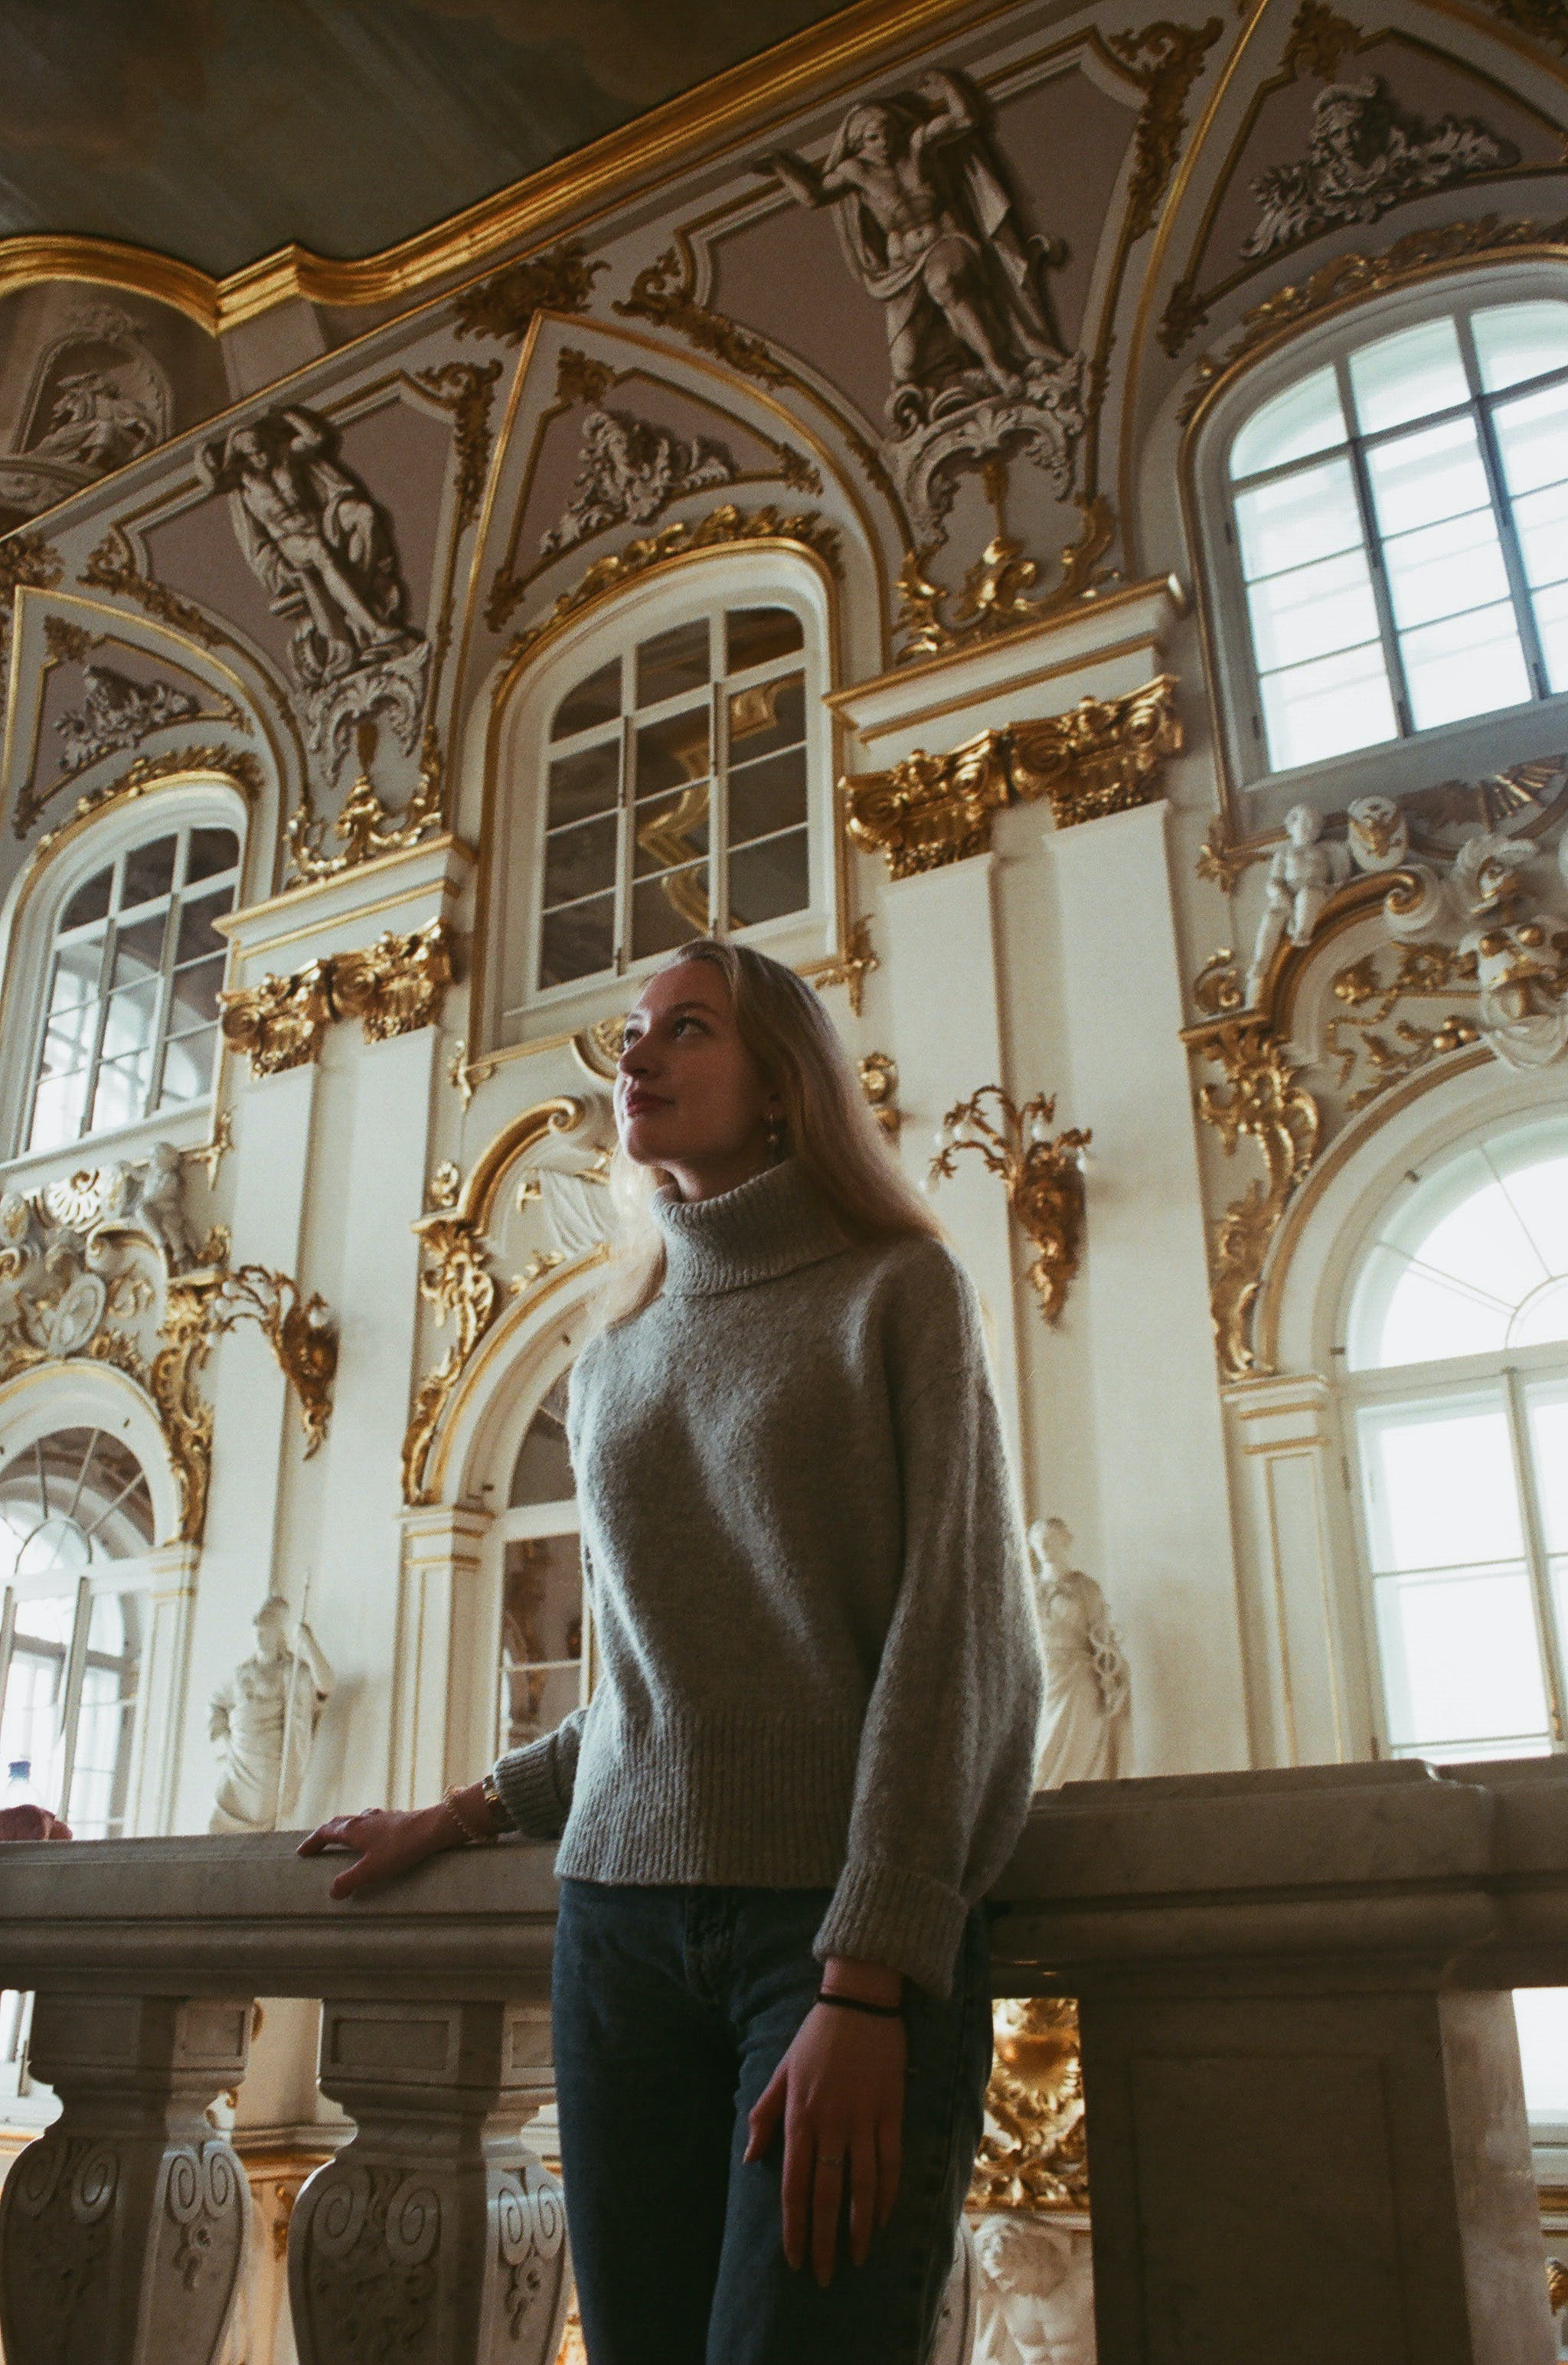 of arches, architecture, blond hair, building